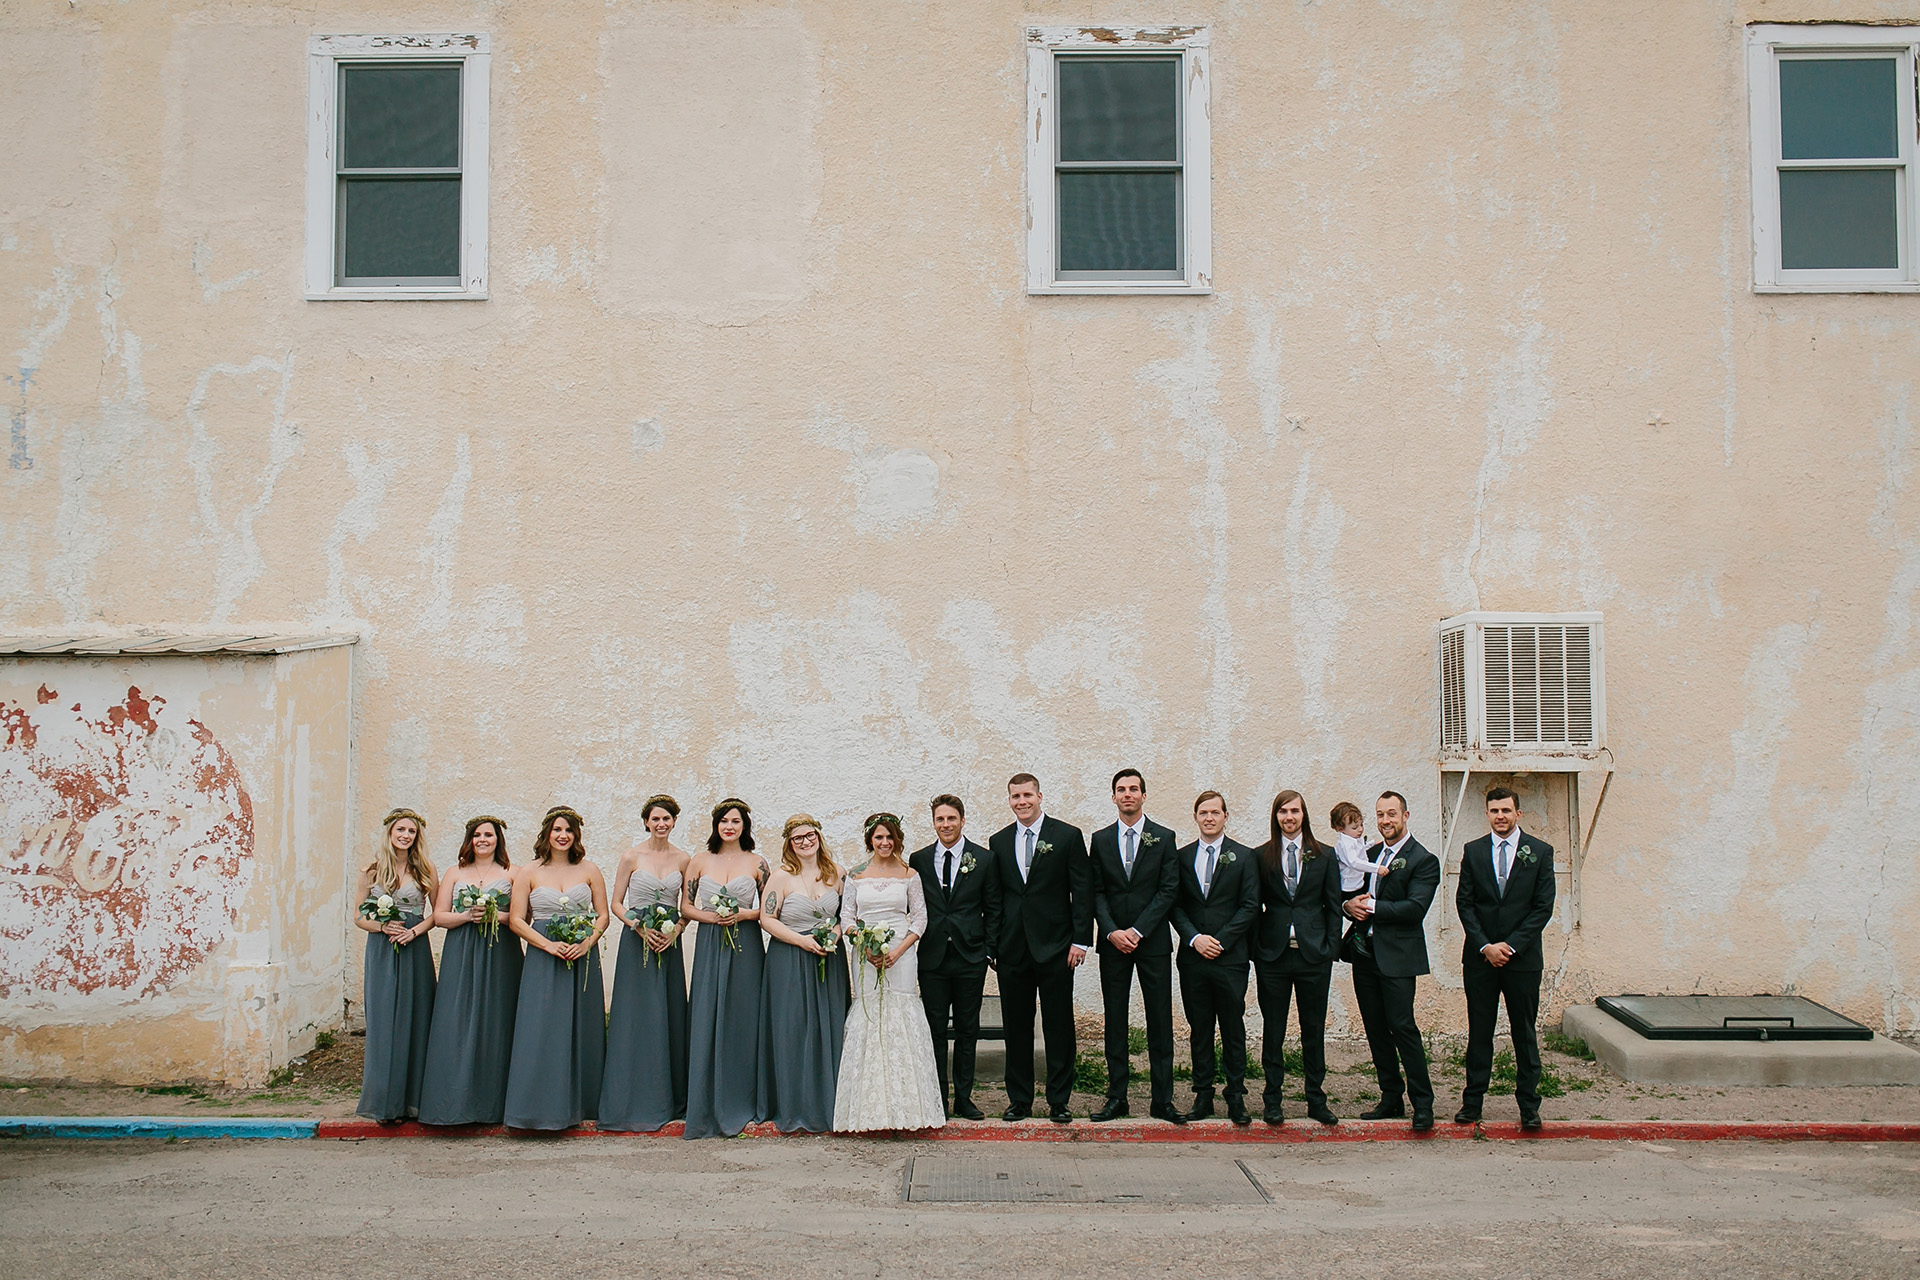 marfa wedding party